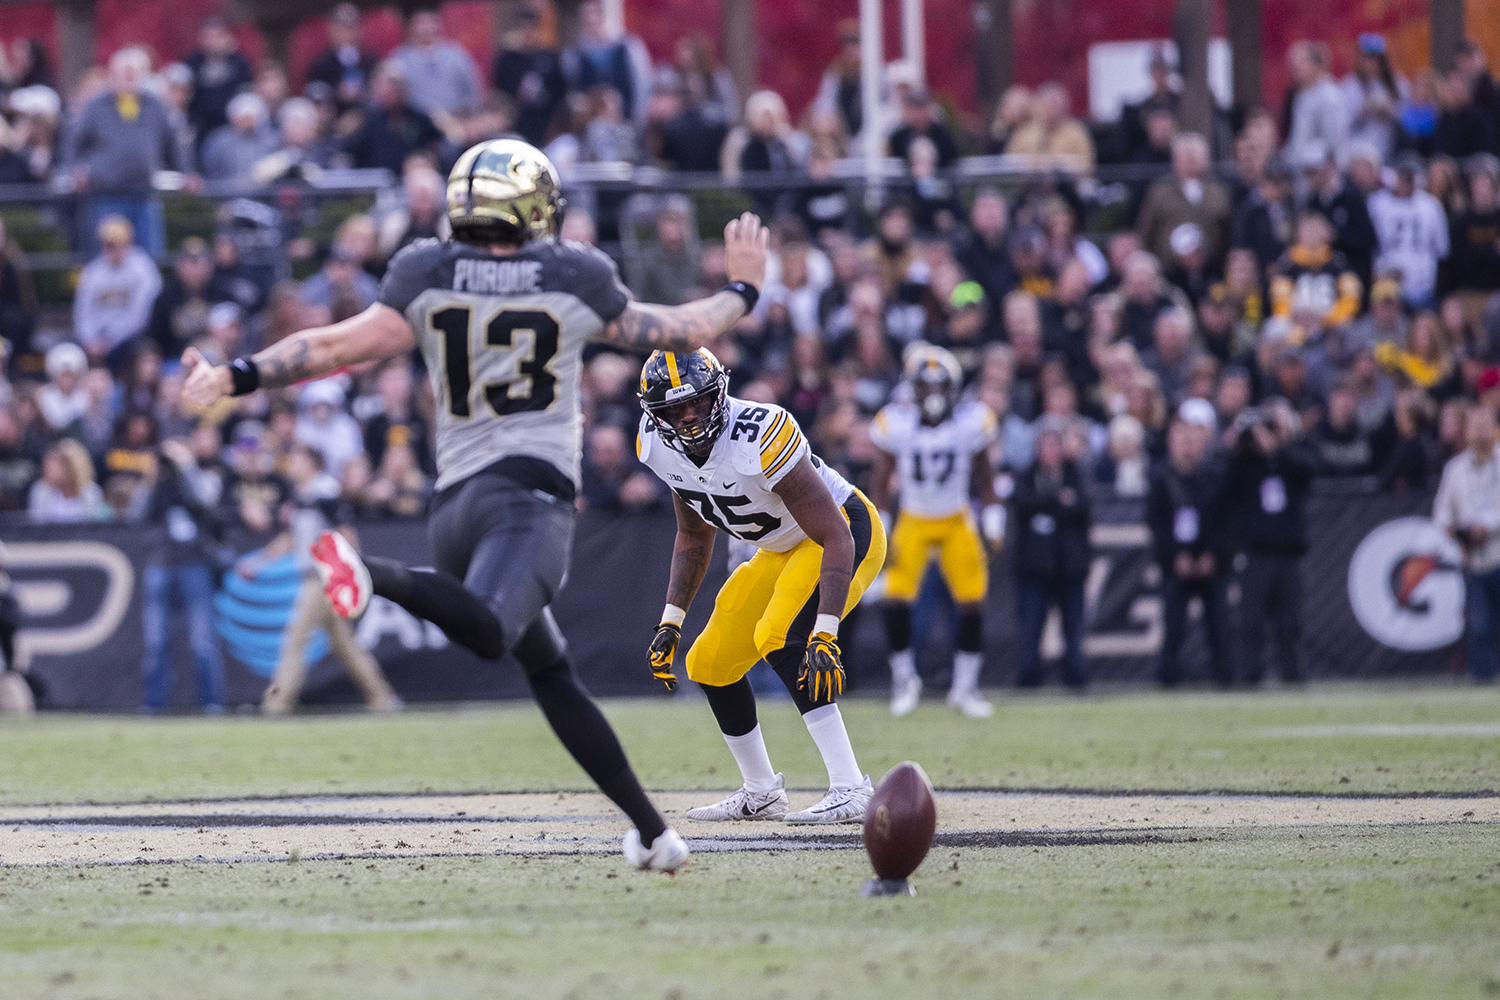 Iowa+linebacker+Barrington+Wade+anticipates+Purdue+kicker+Spencer+Evans%27+kick+during+the+Iowa%2FPurdue+game+at+Ross-Ade+Stadium+in+West+Lafayette%2C+Ind.+The+Boilermakers+defeated+the+Hawkeyes%2C+38-36%2C+with+a+last+second+field+goal.+